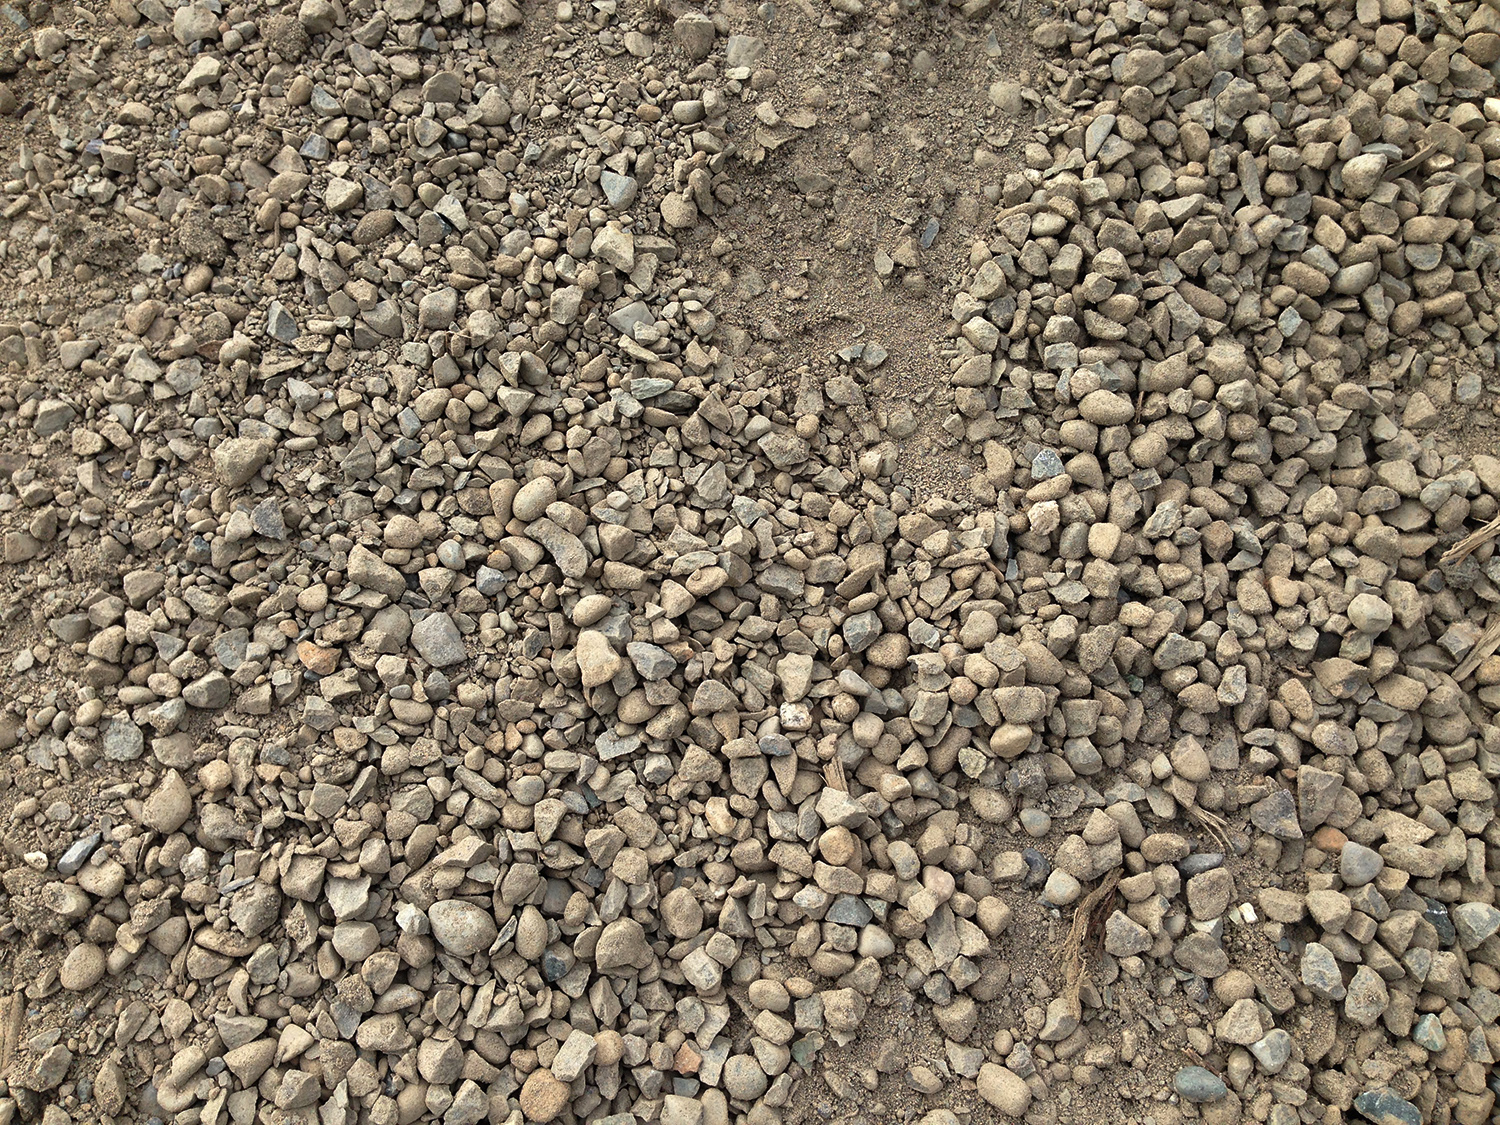 3 4 Quot Crushed Gravel : Road crush renuable resources campbell river